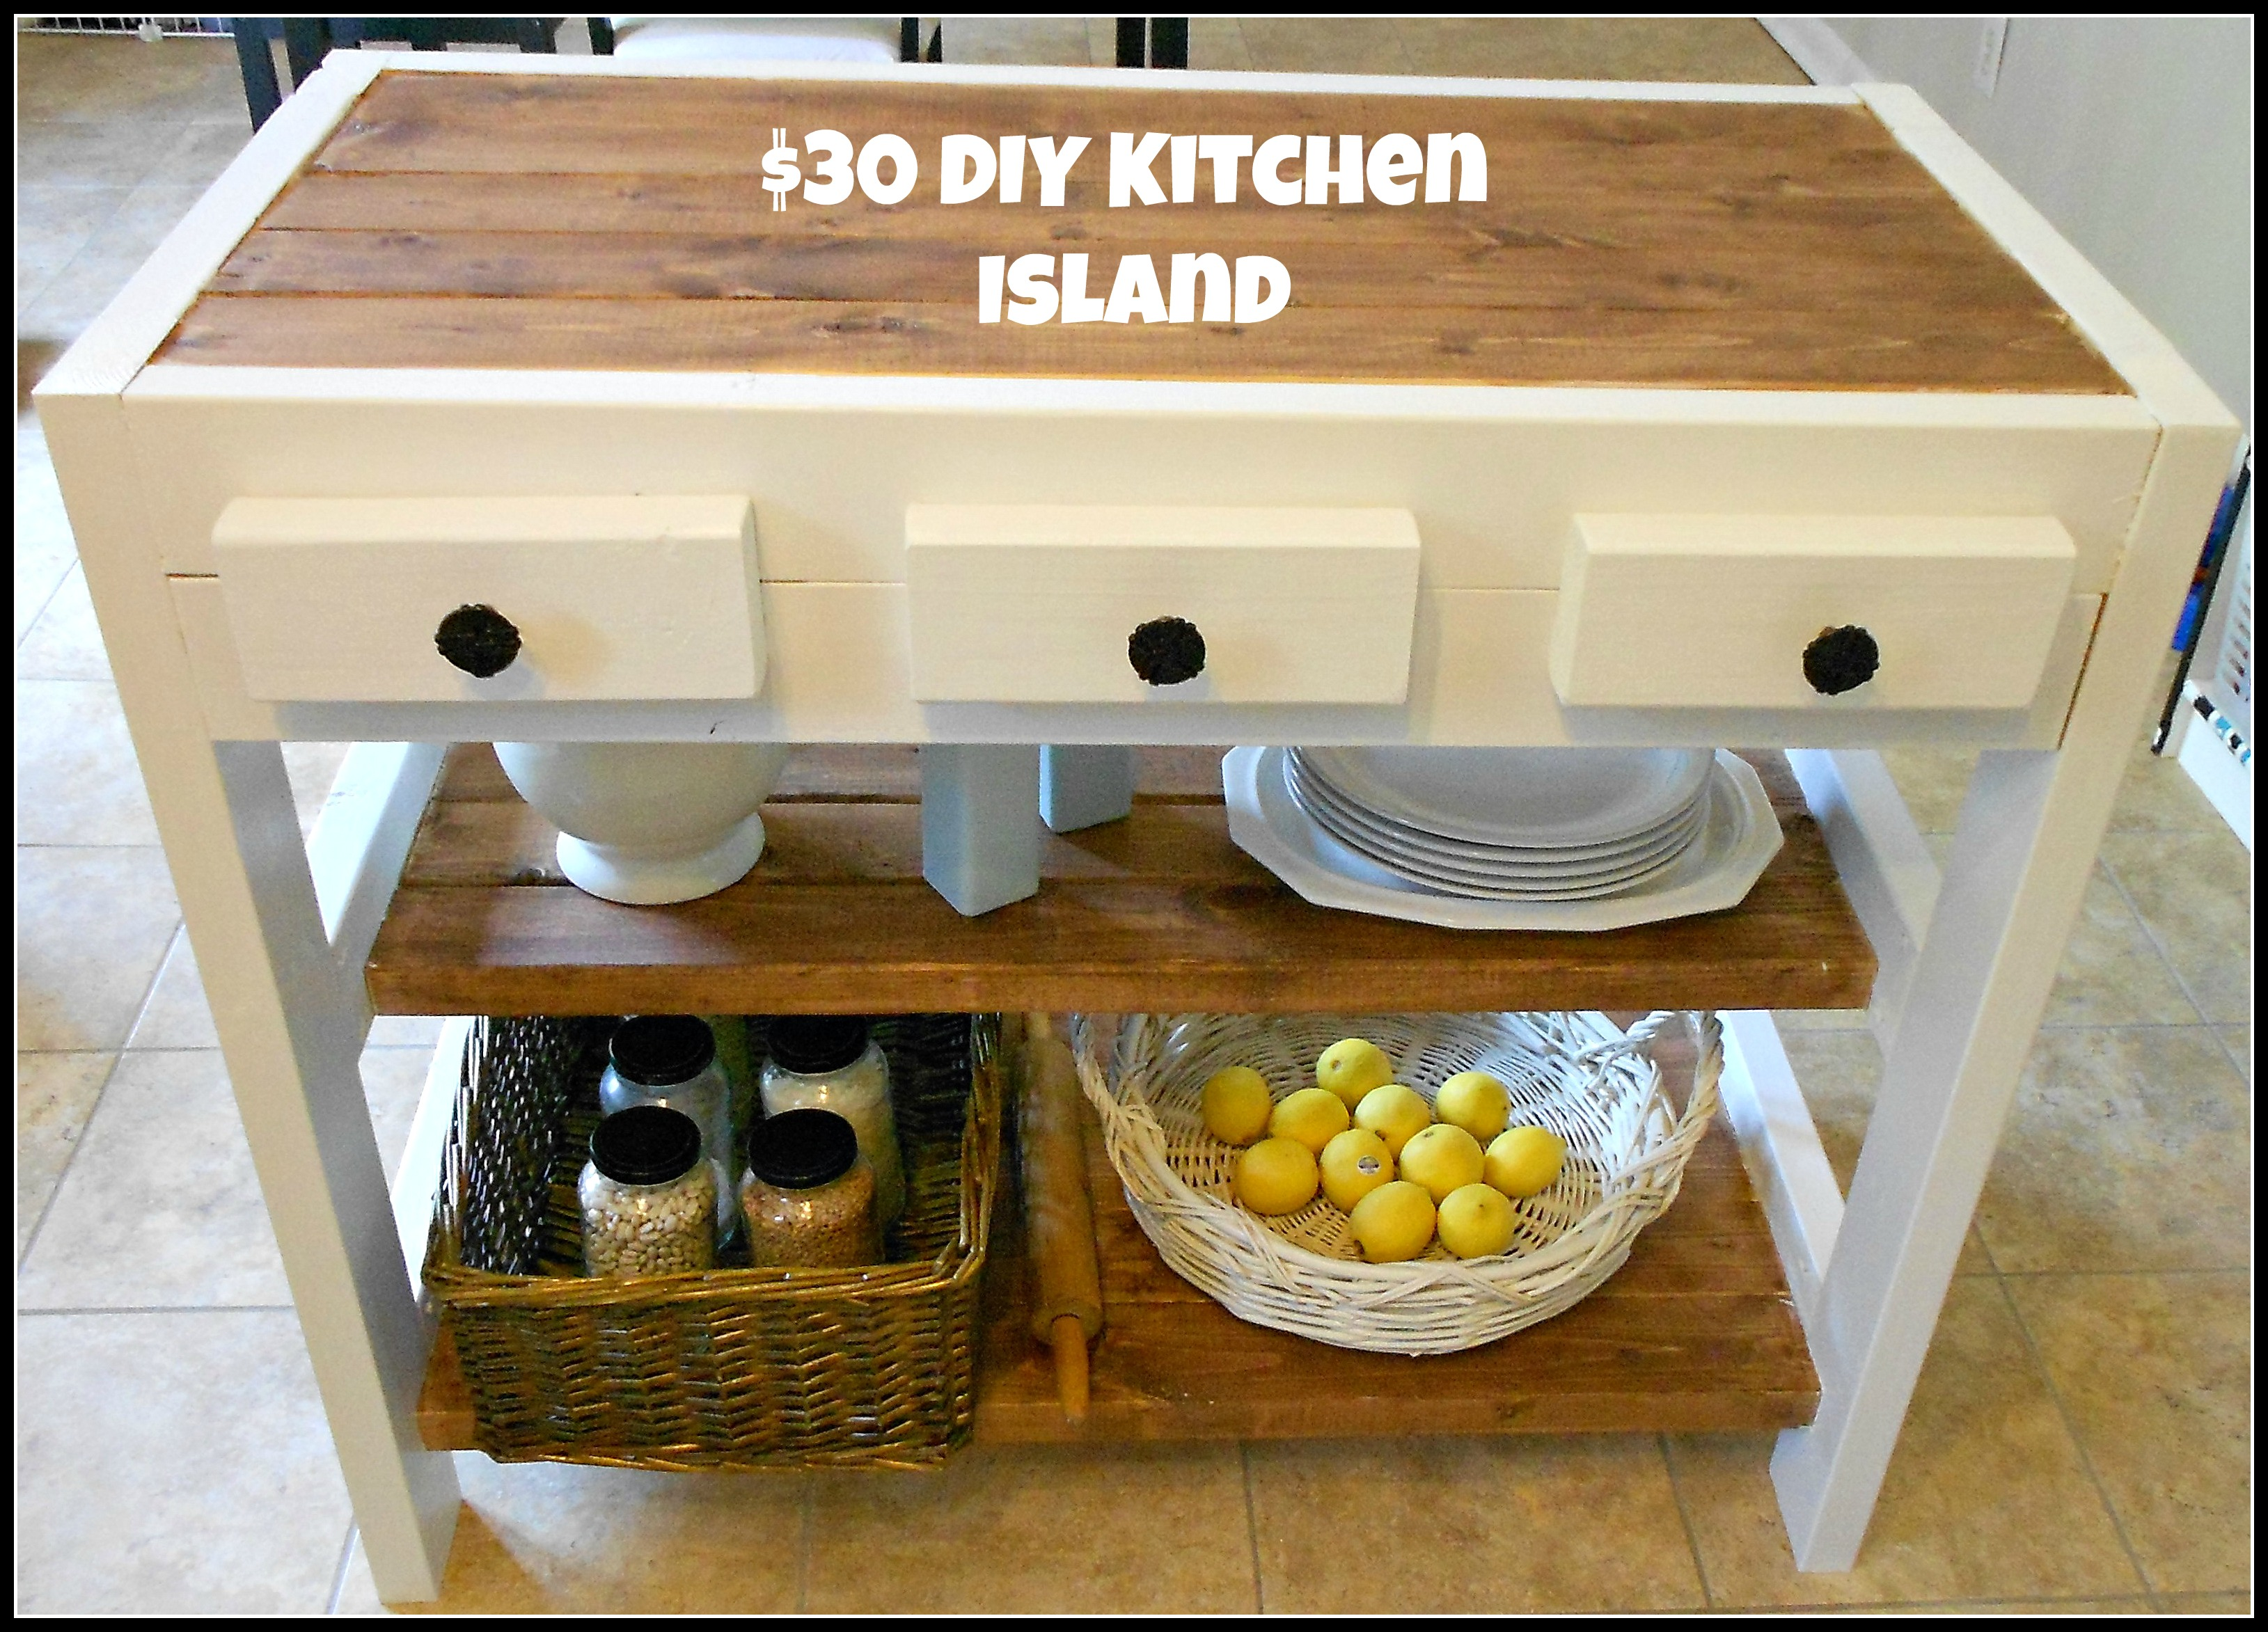 Diy Kitchen Island Ideas $30 diy kitchen island - mom in music city